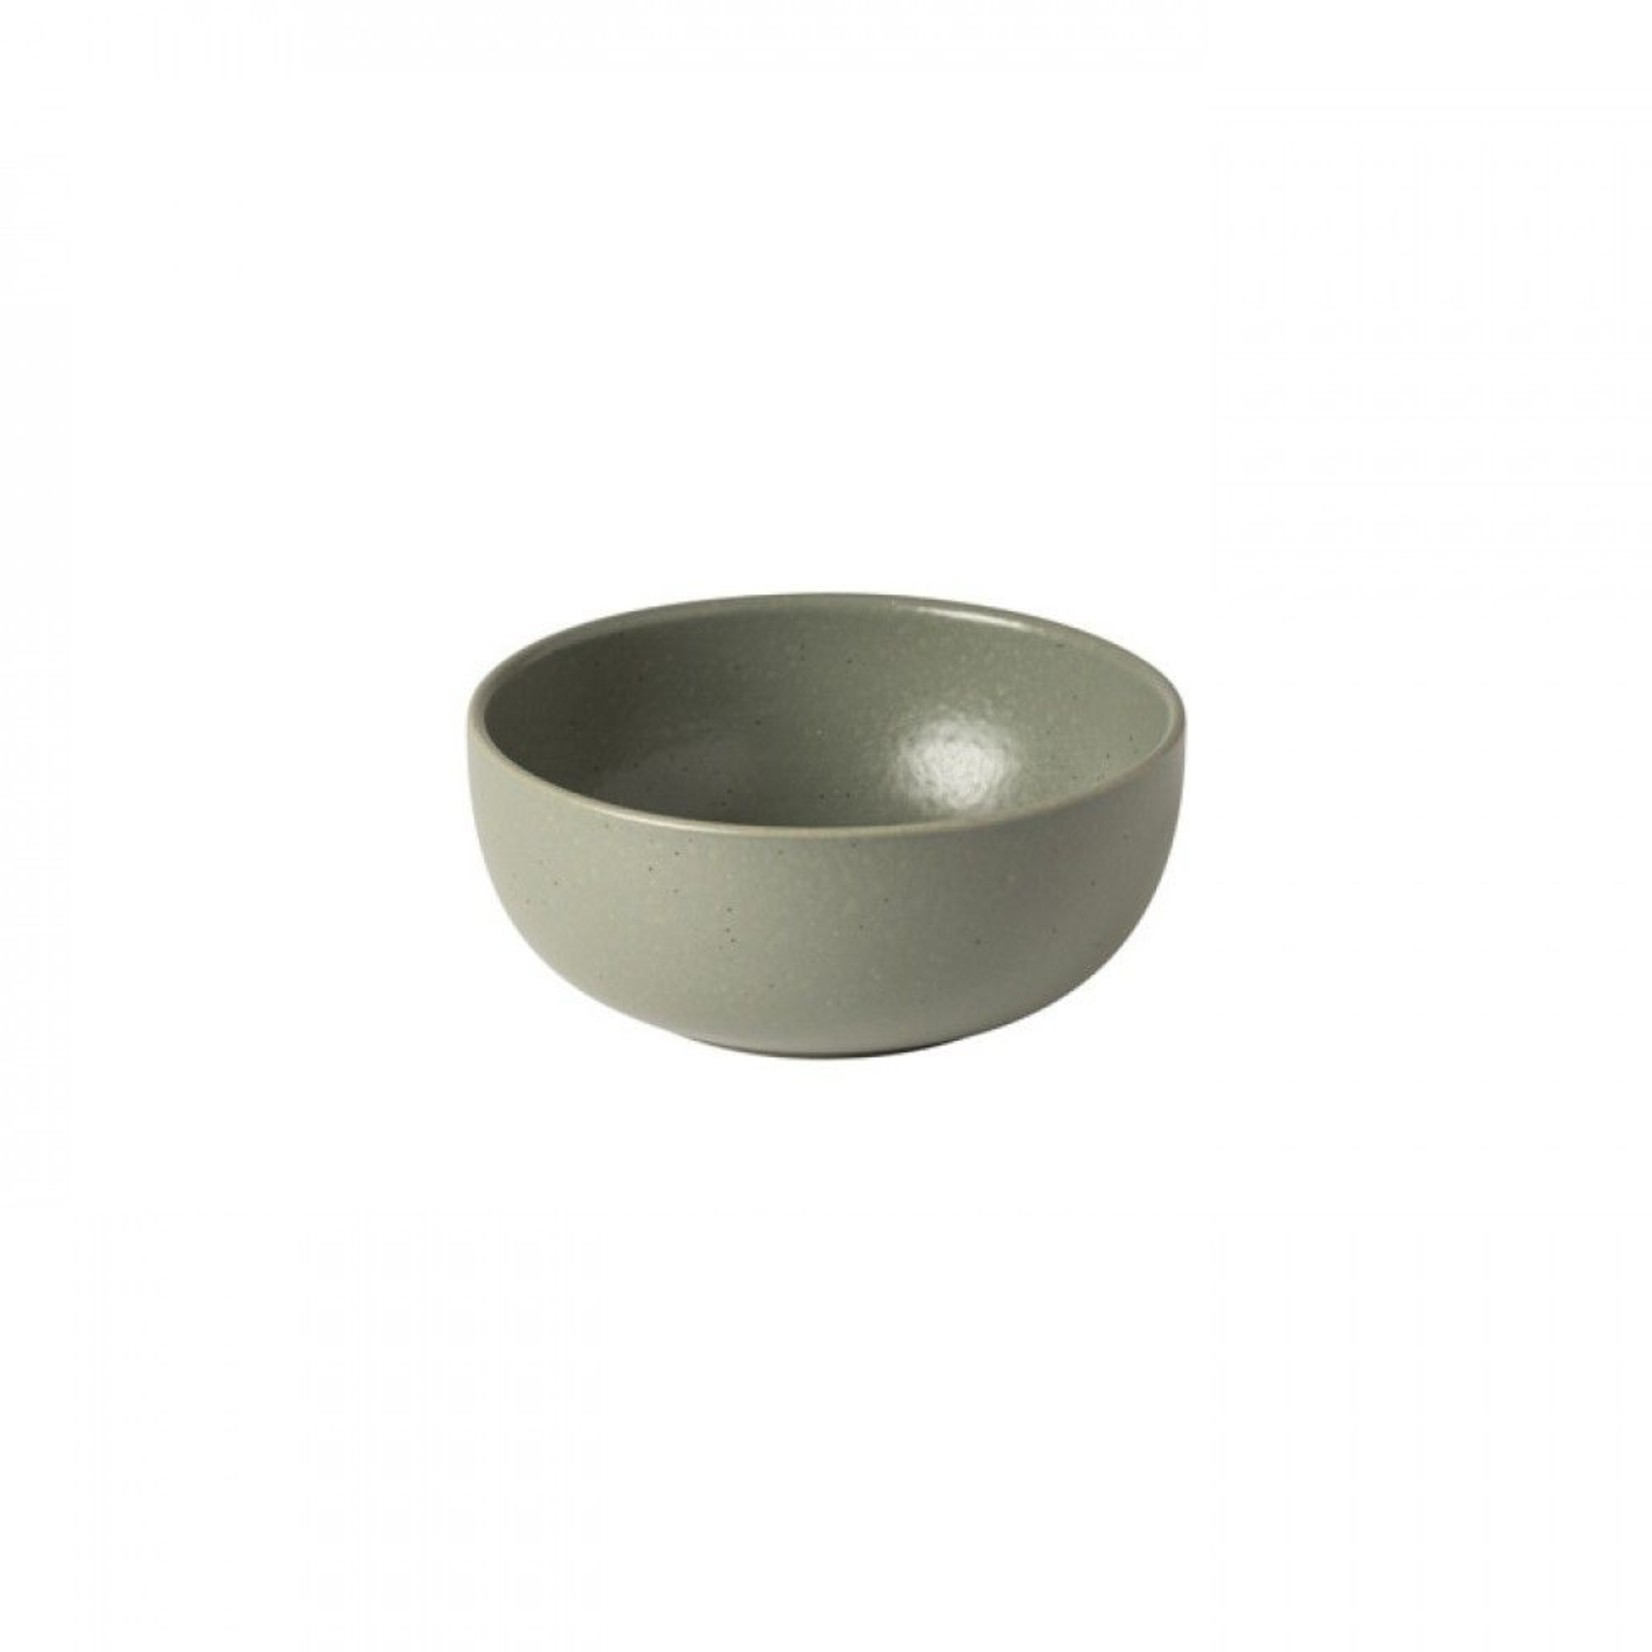 Casafina Pacifica Soup/ Cereal Bowl